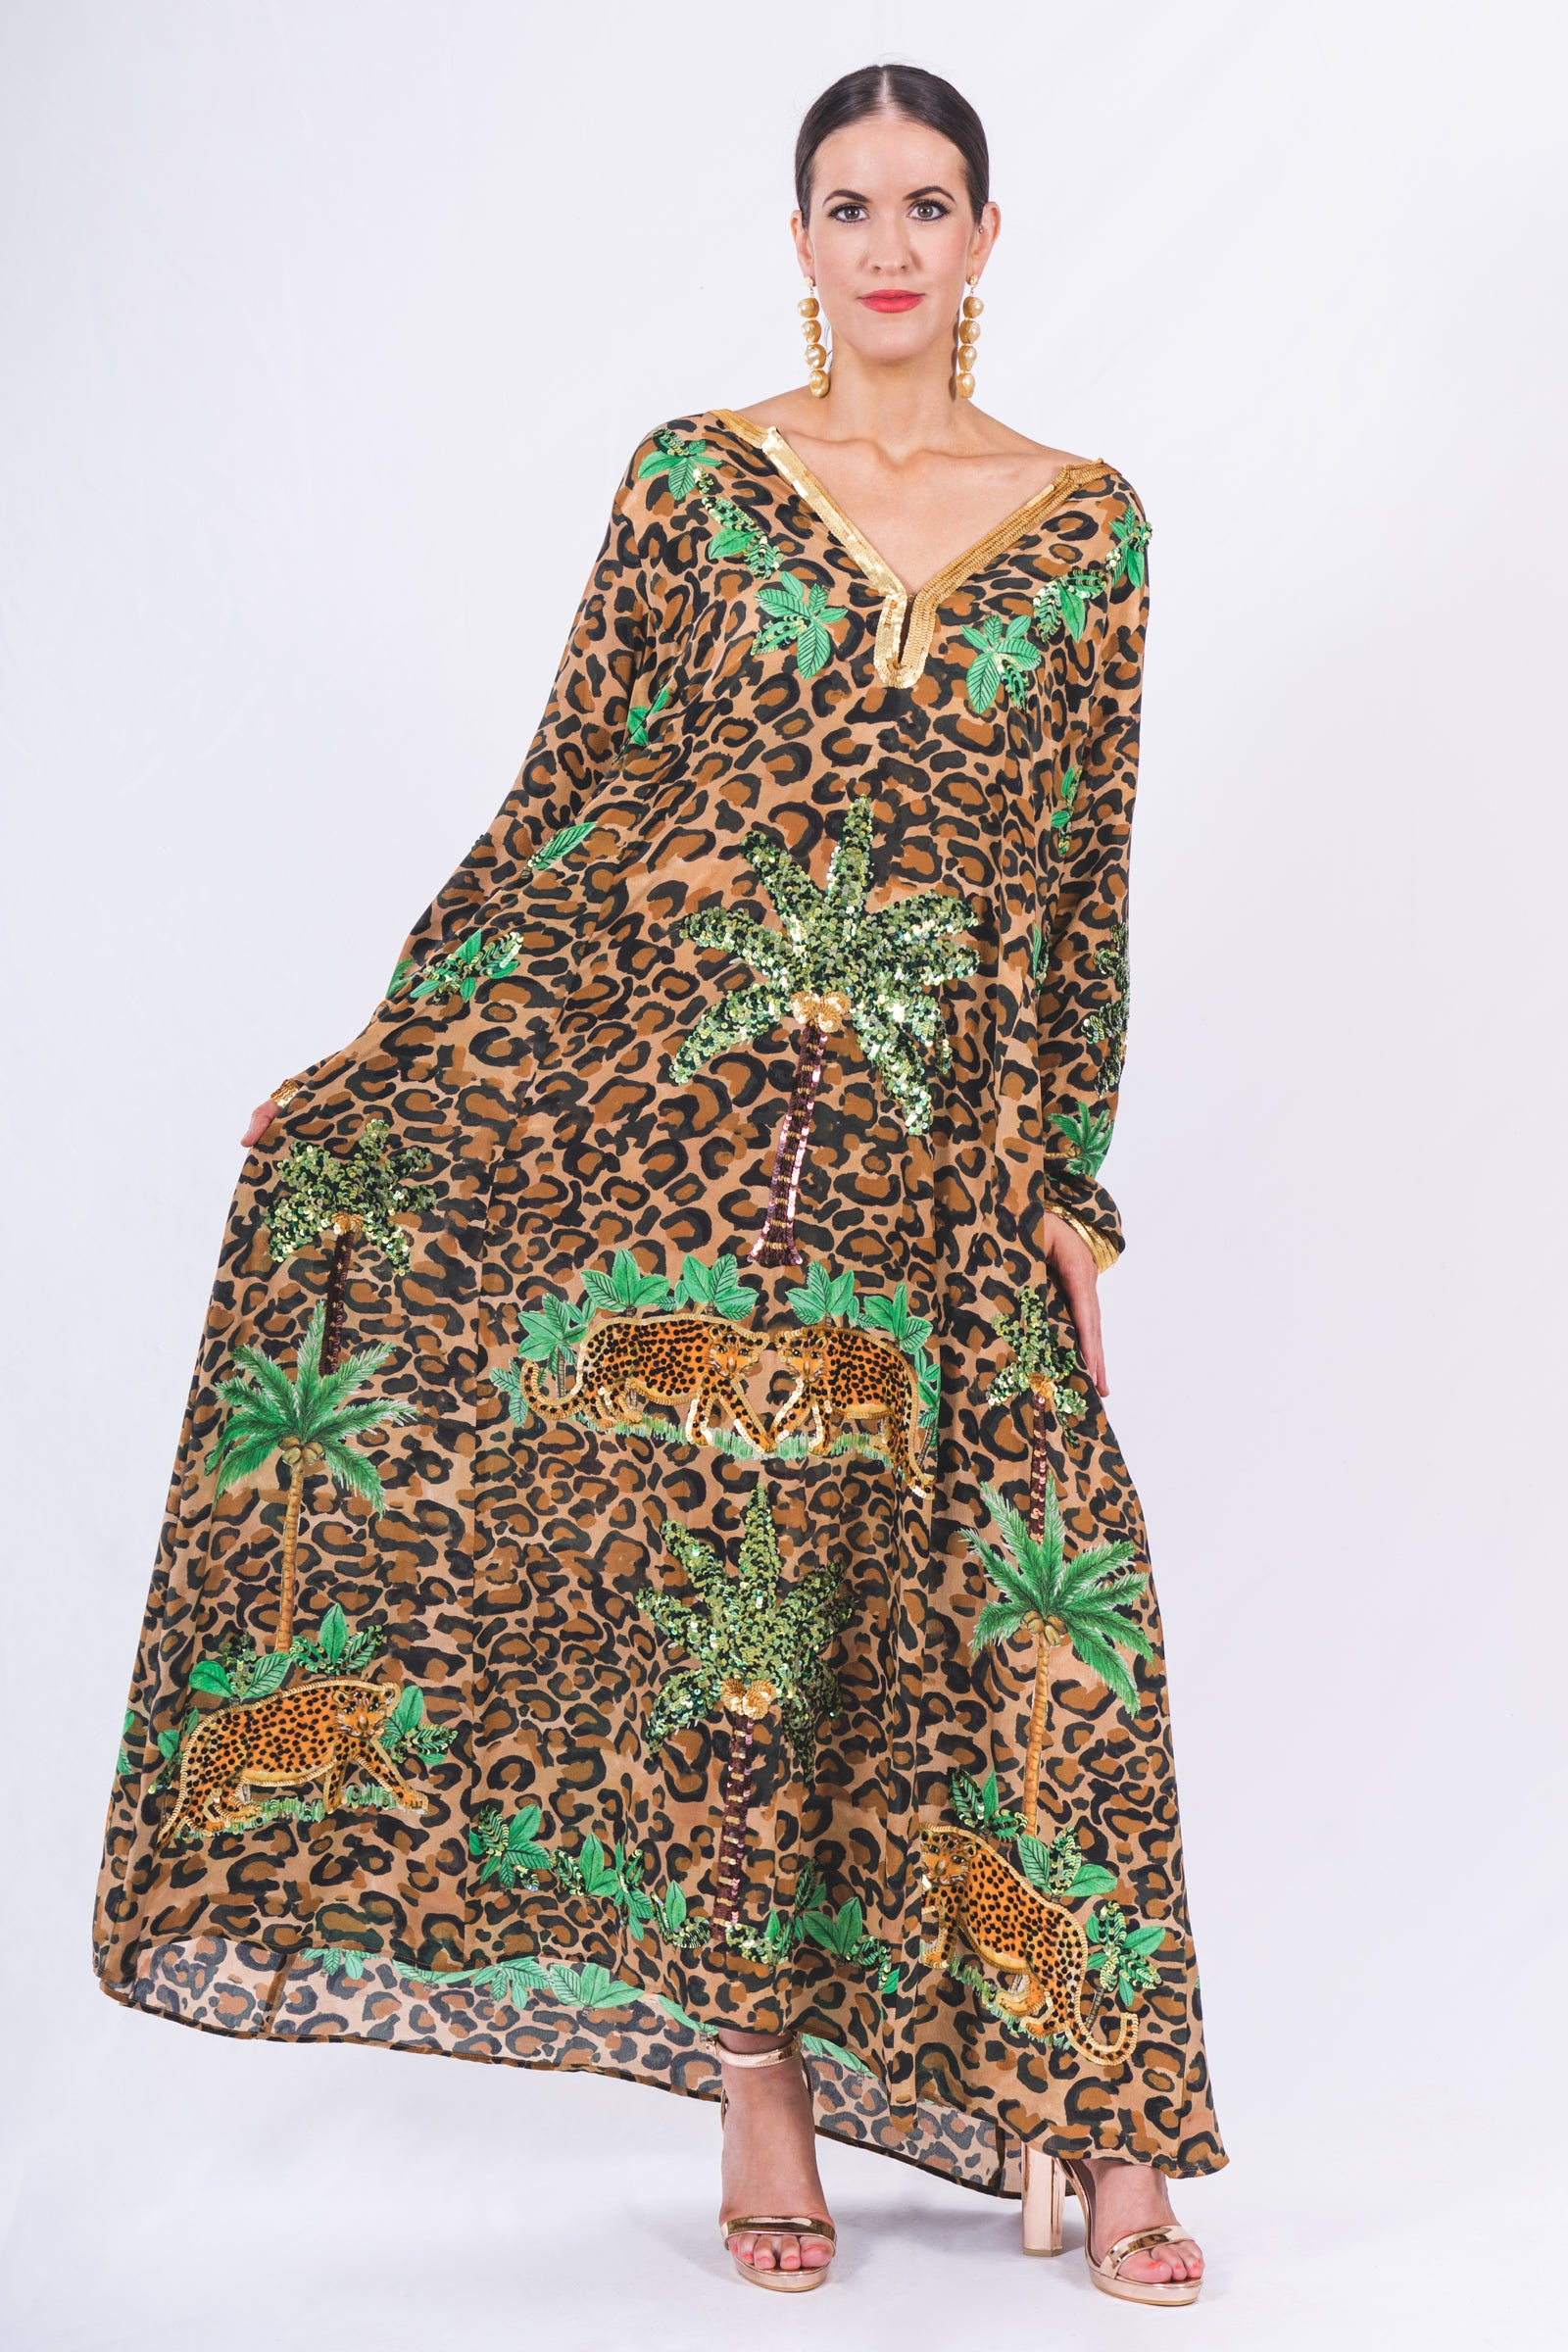 The Leopard Palm Springs Long Sleeve Kaftan by Bonita Collective